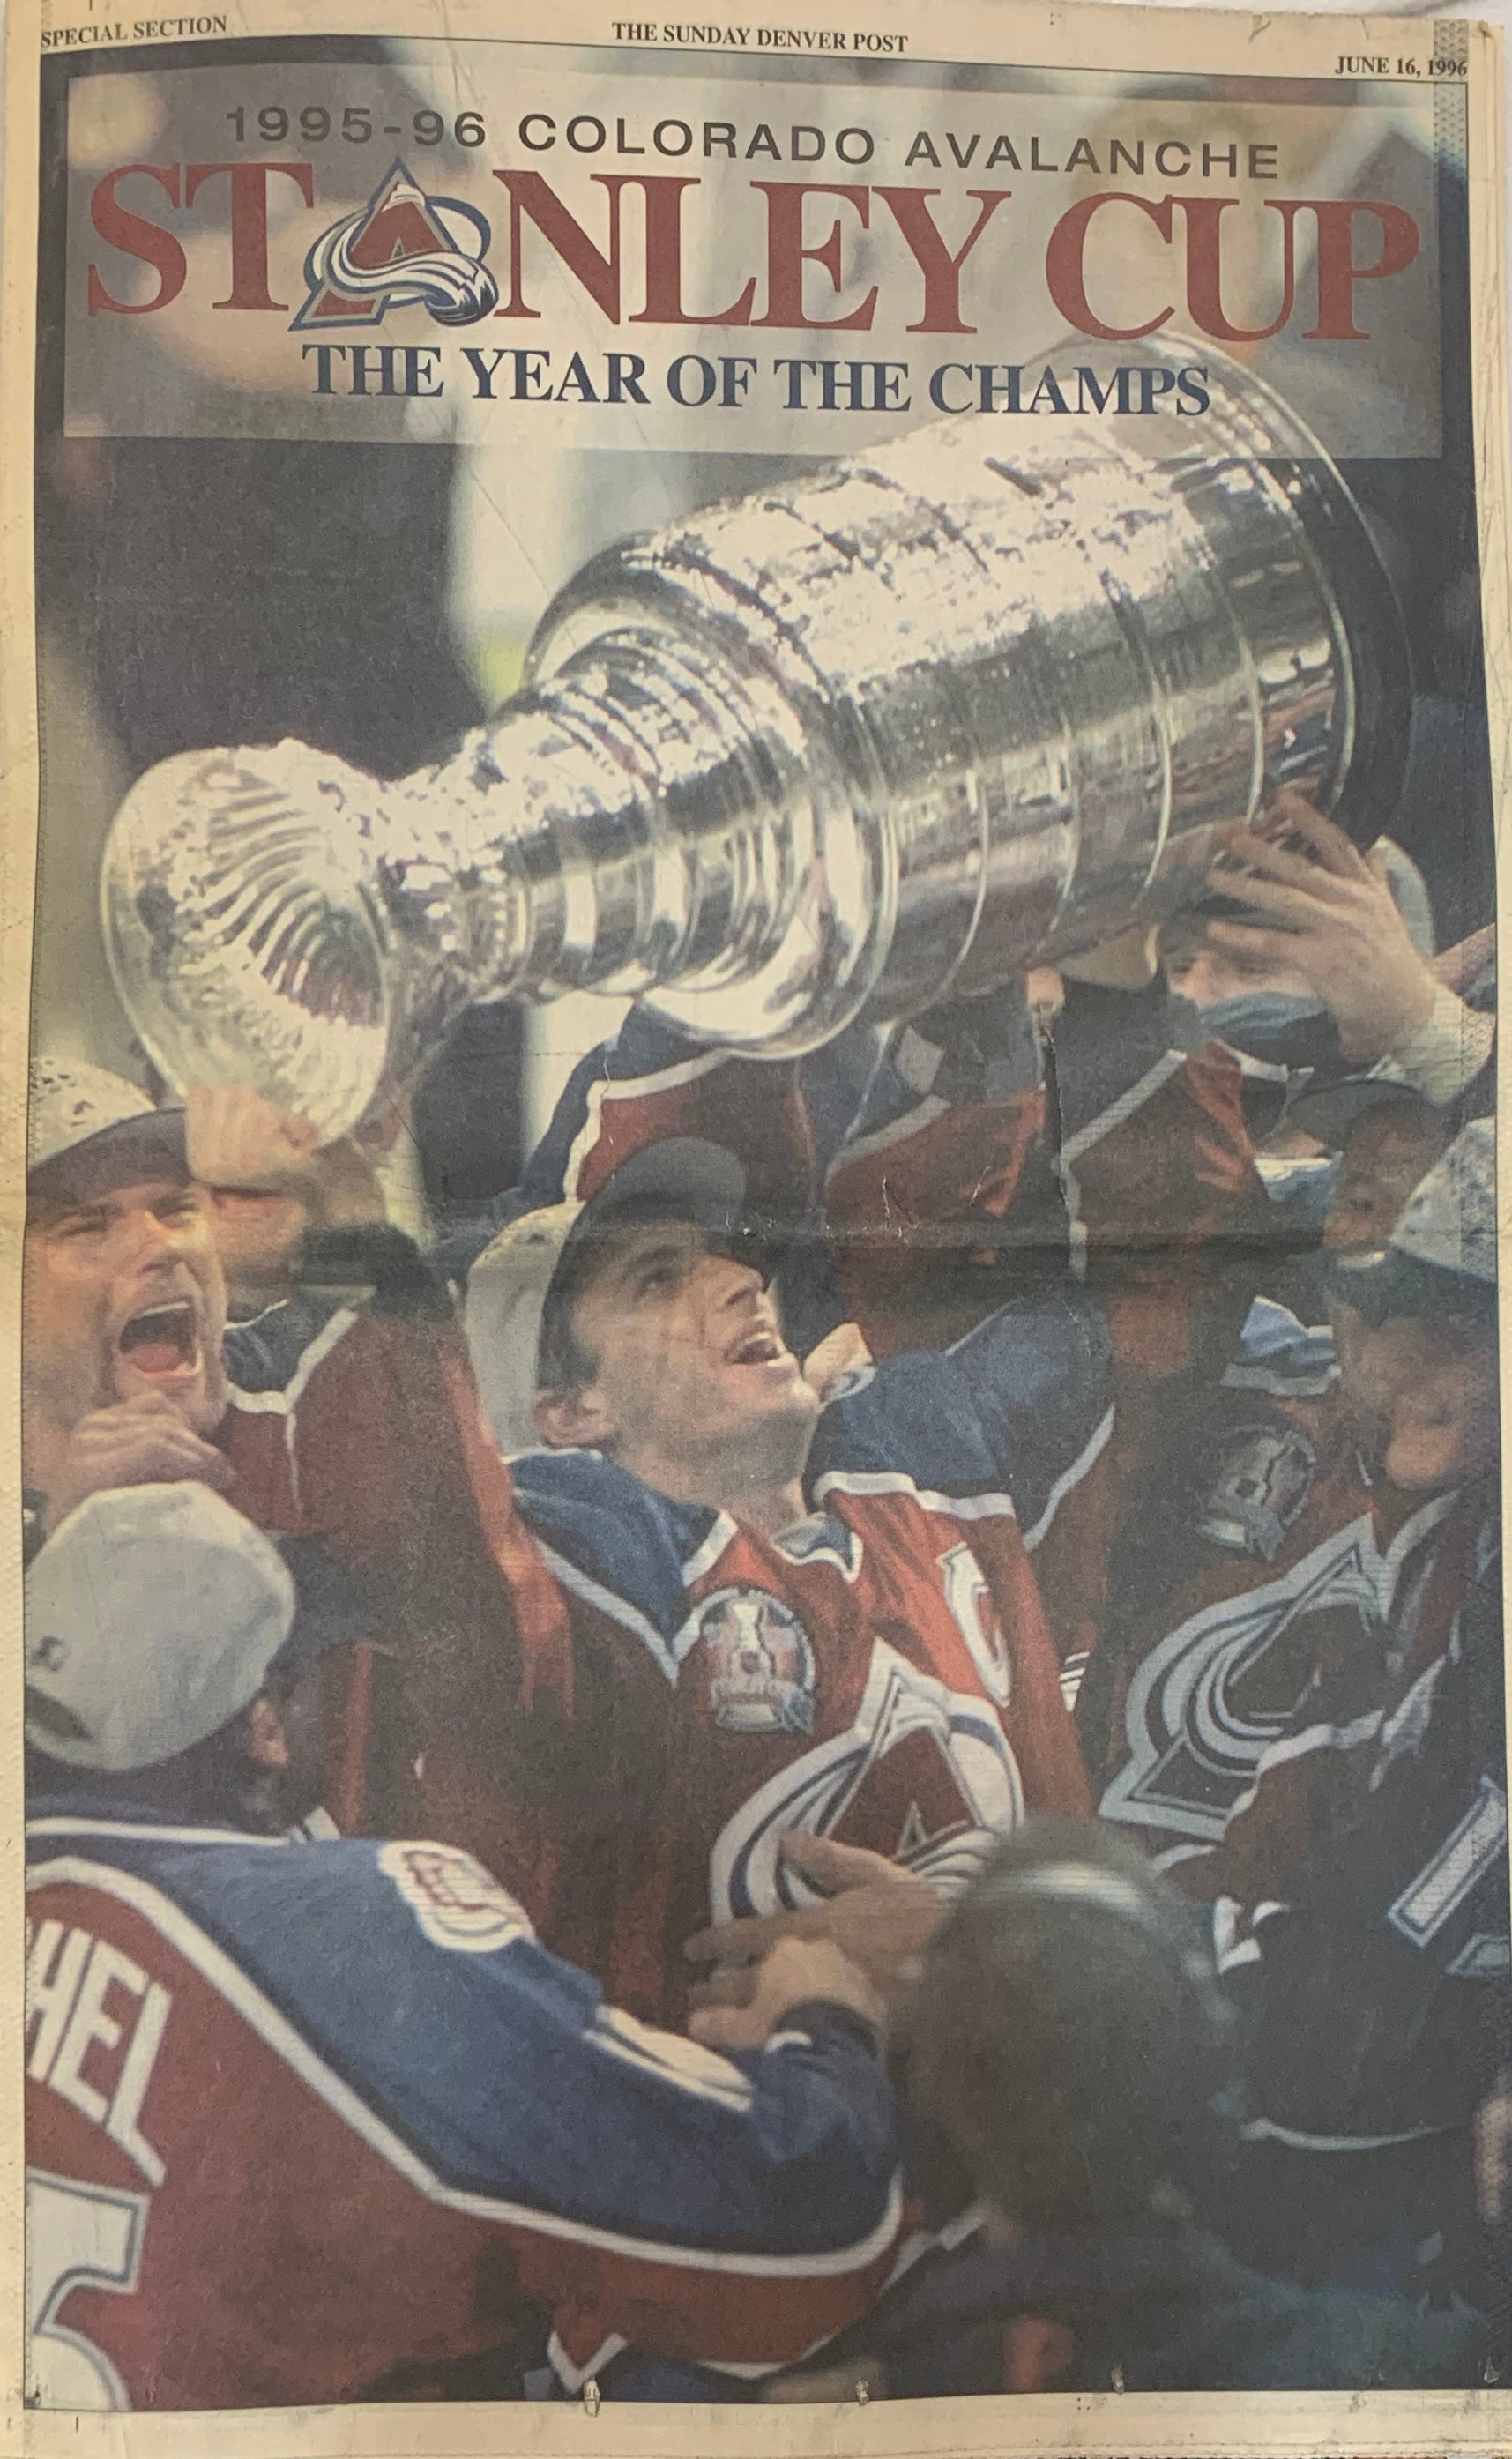 Rocky Mountain News June 16, 1996 Colorado Avalanche The Year of the Champs - Latitude Sports Marketing